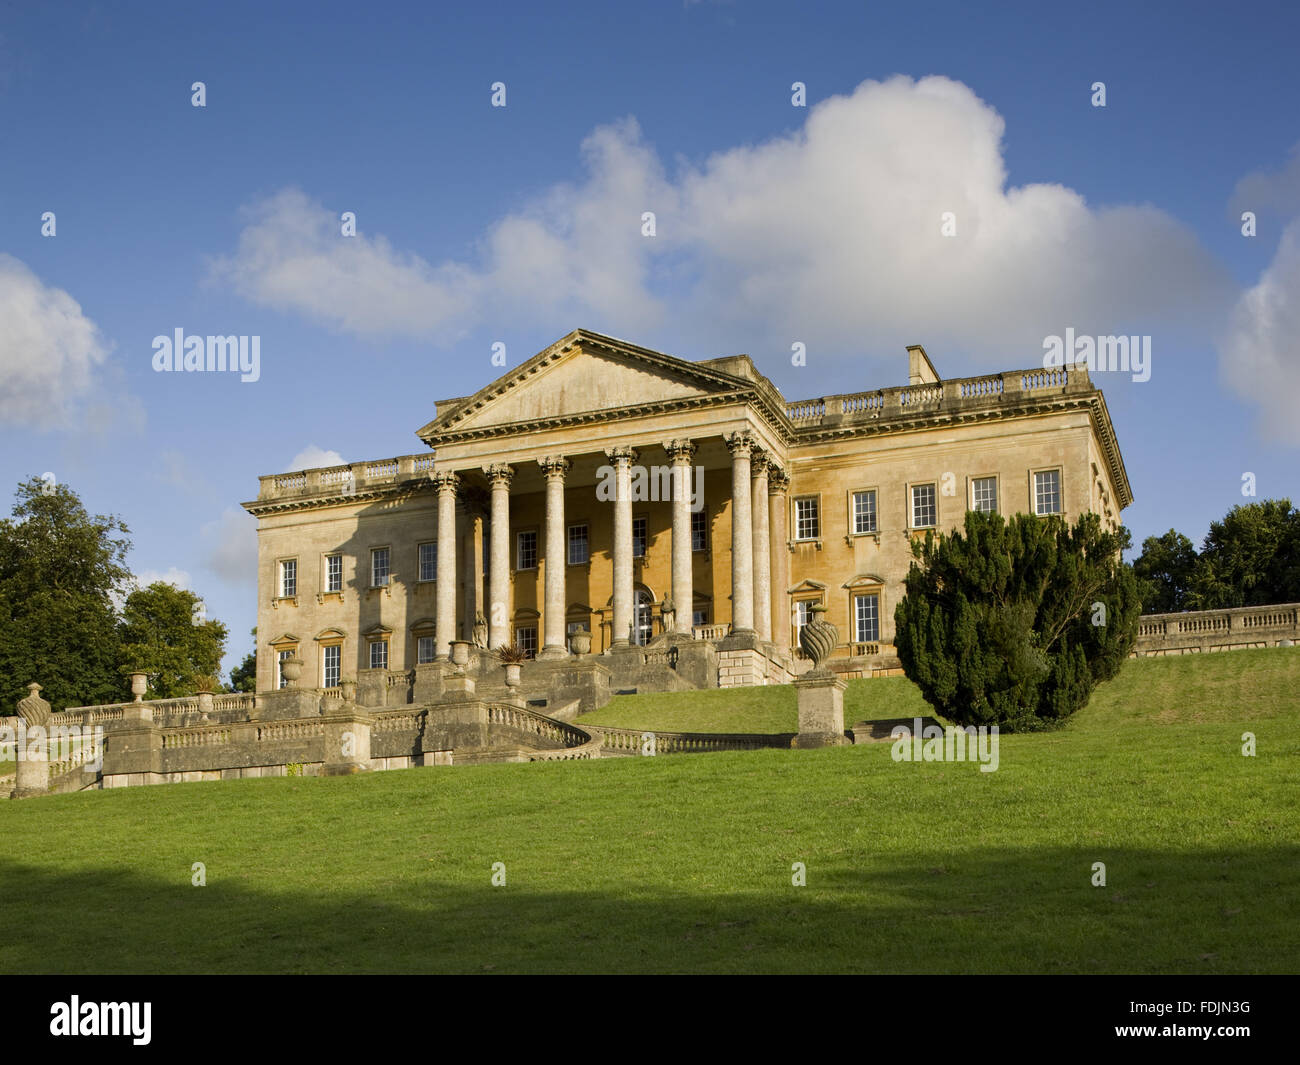 Prior Park Landscape Garden The house not national trust at prior park landscape garden bath the house not national trust at prior park landscape garden bath the palladian mansion was started in 1734 by builder john wood for the owner workwithnaturefo